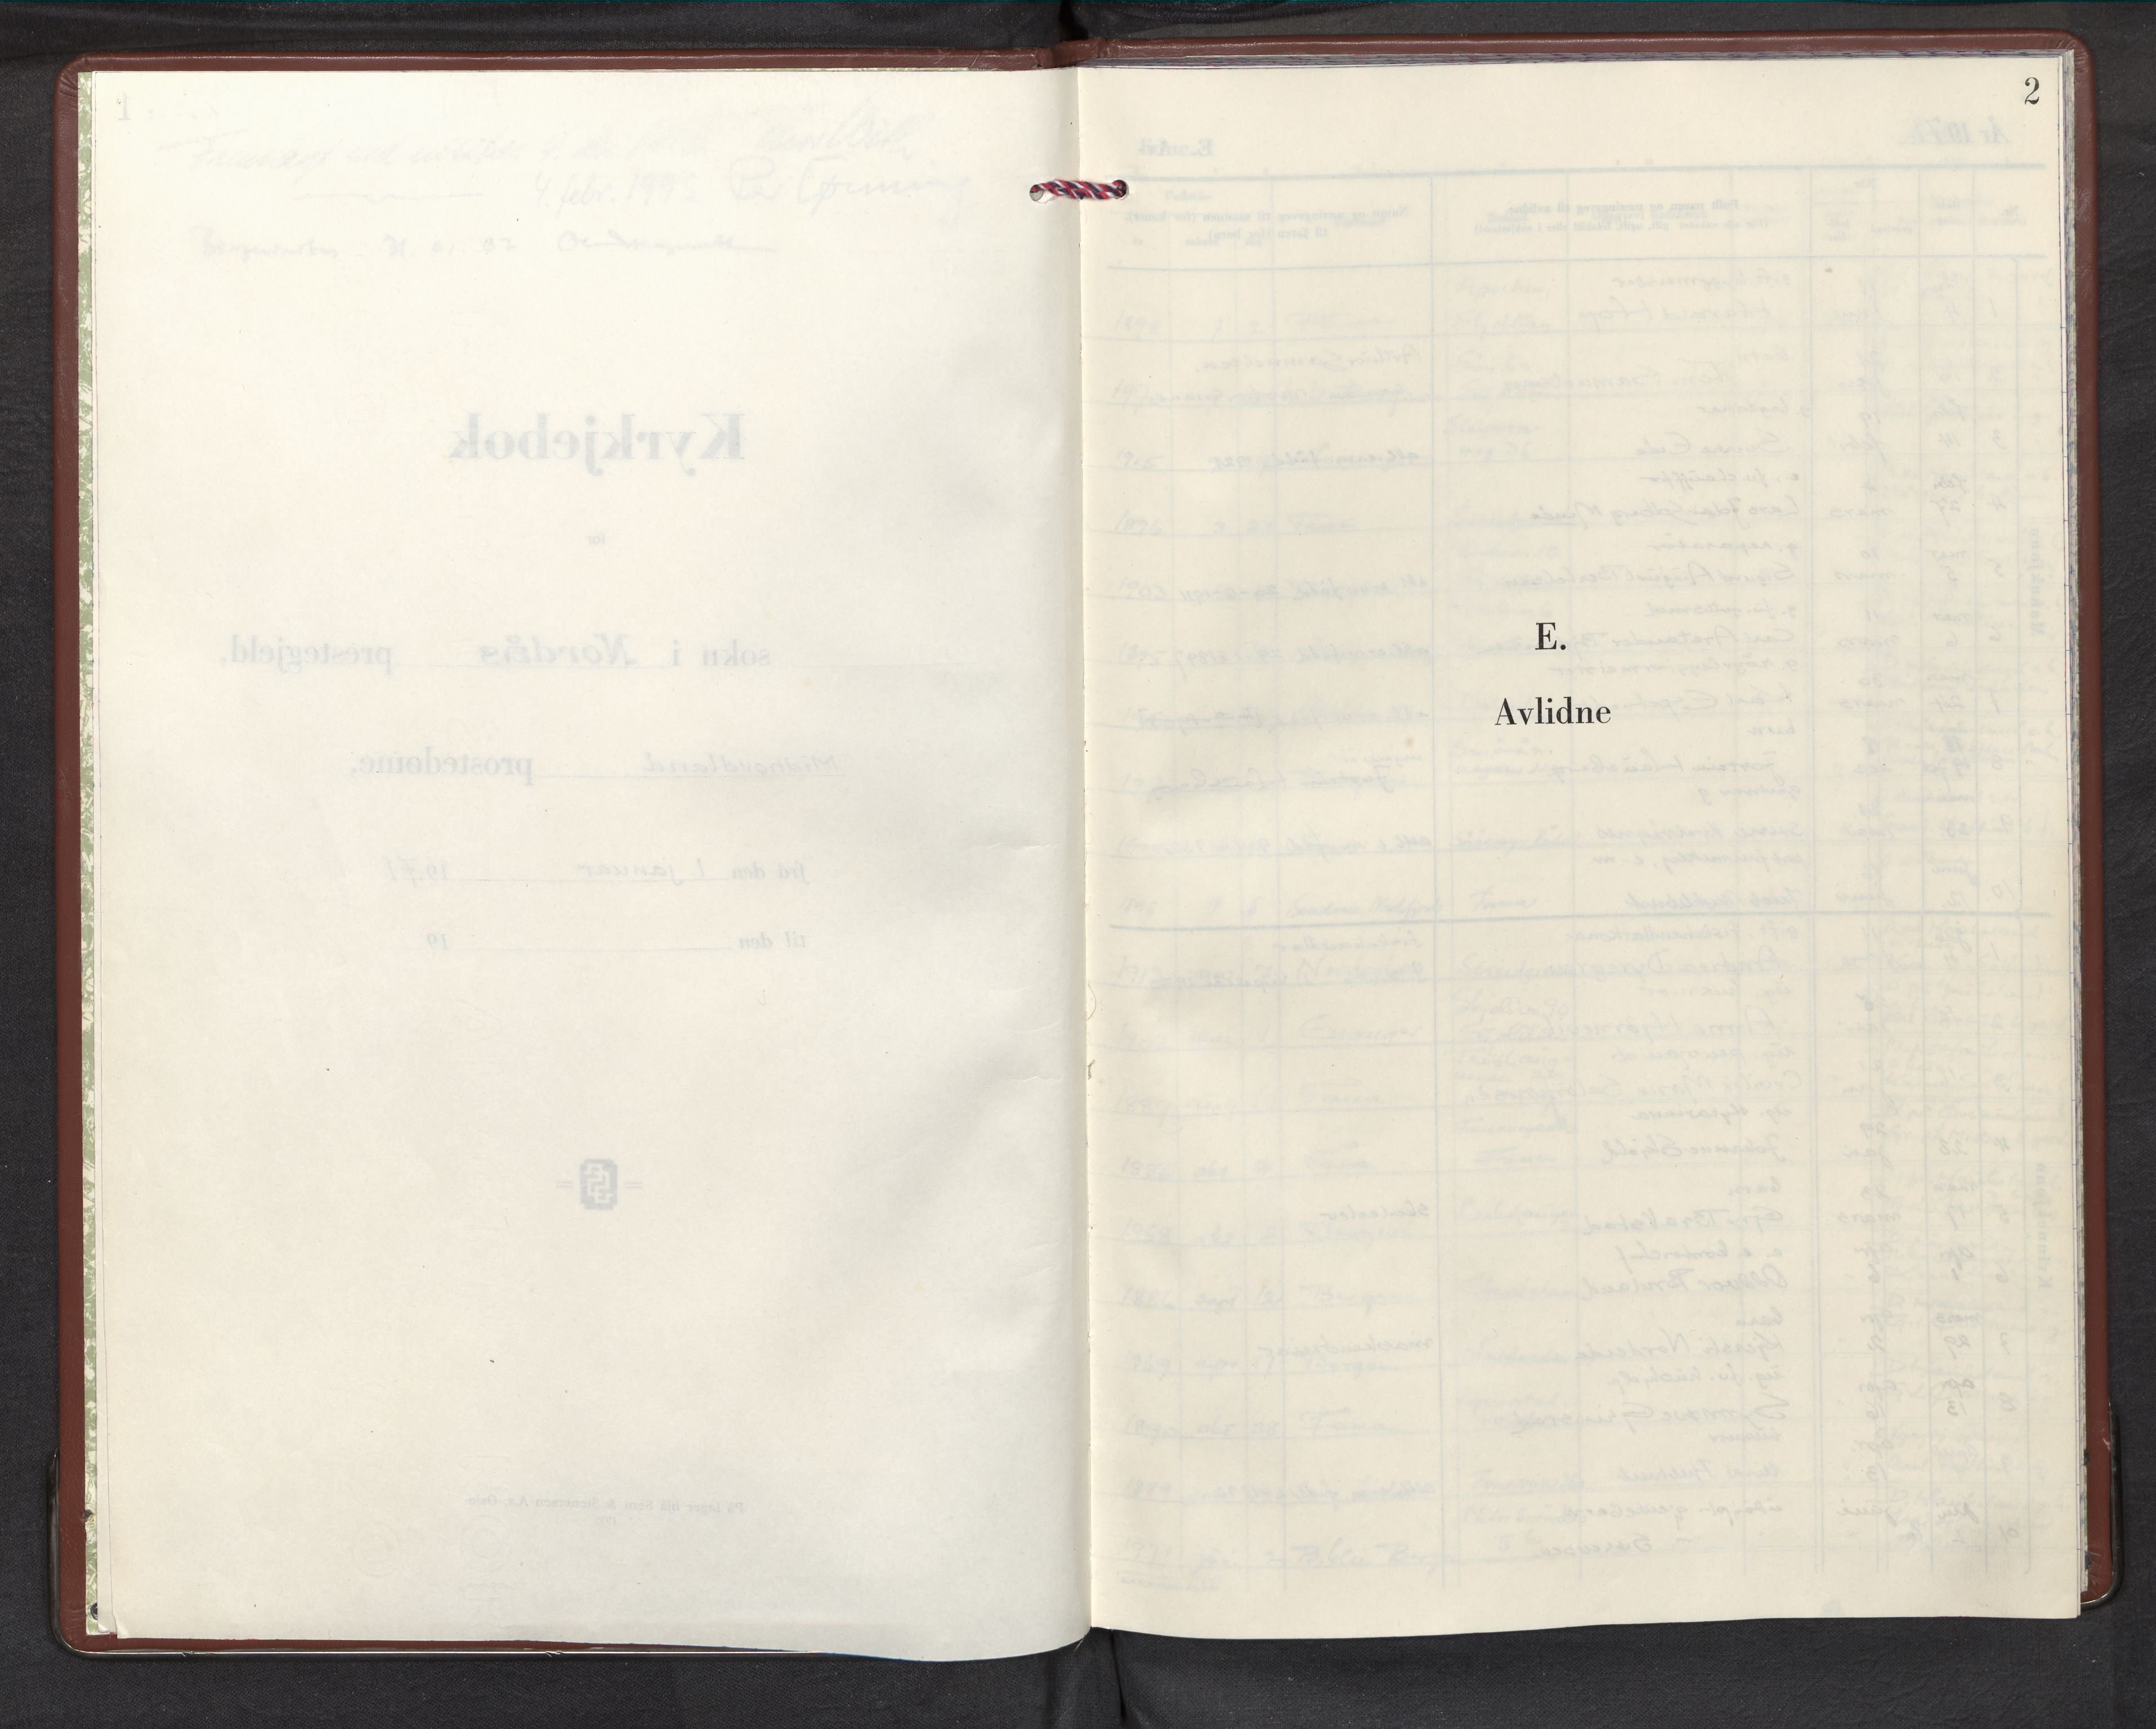 SAB, Nordås sokneprestembete, Parish register (official) no. D 1, 1971-1998, p. 2